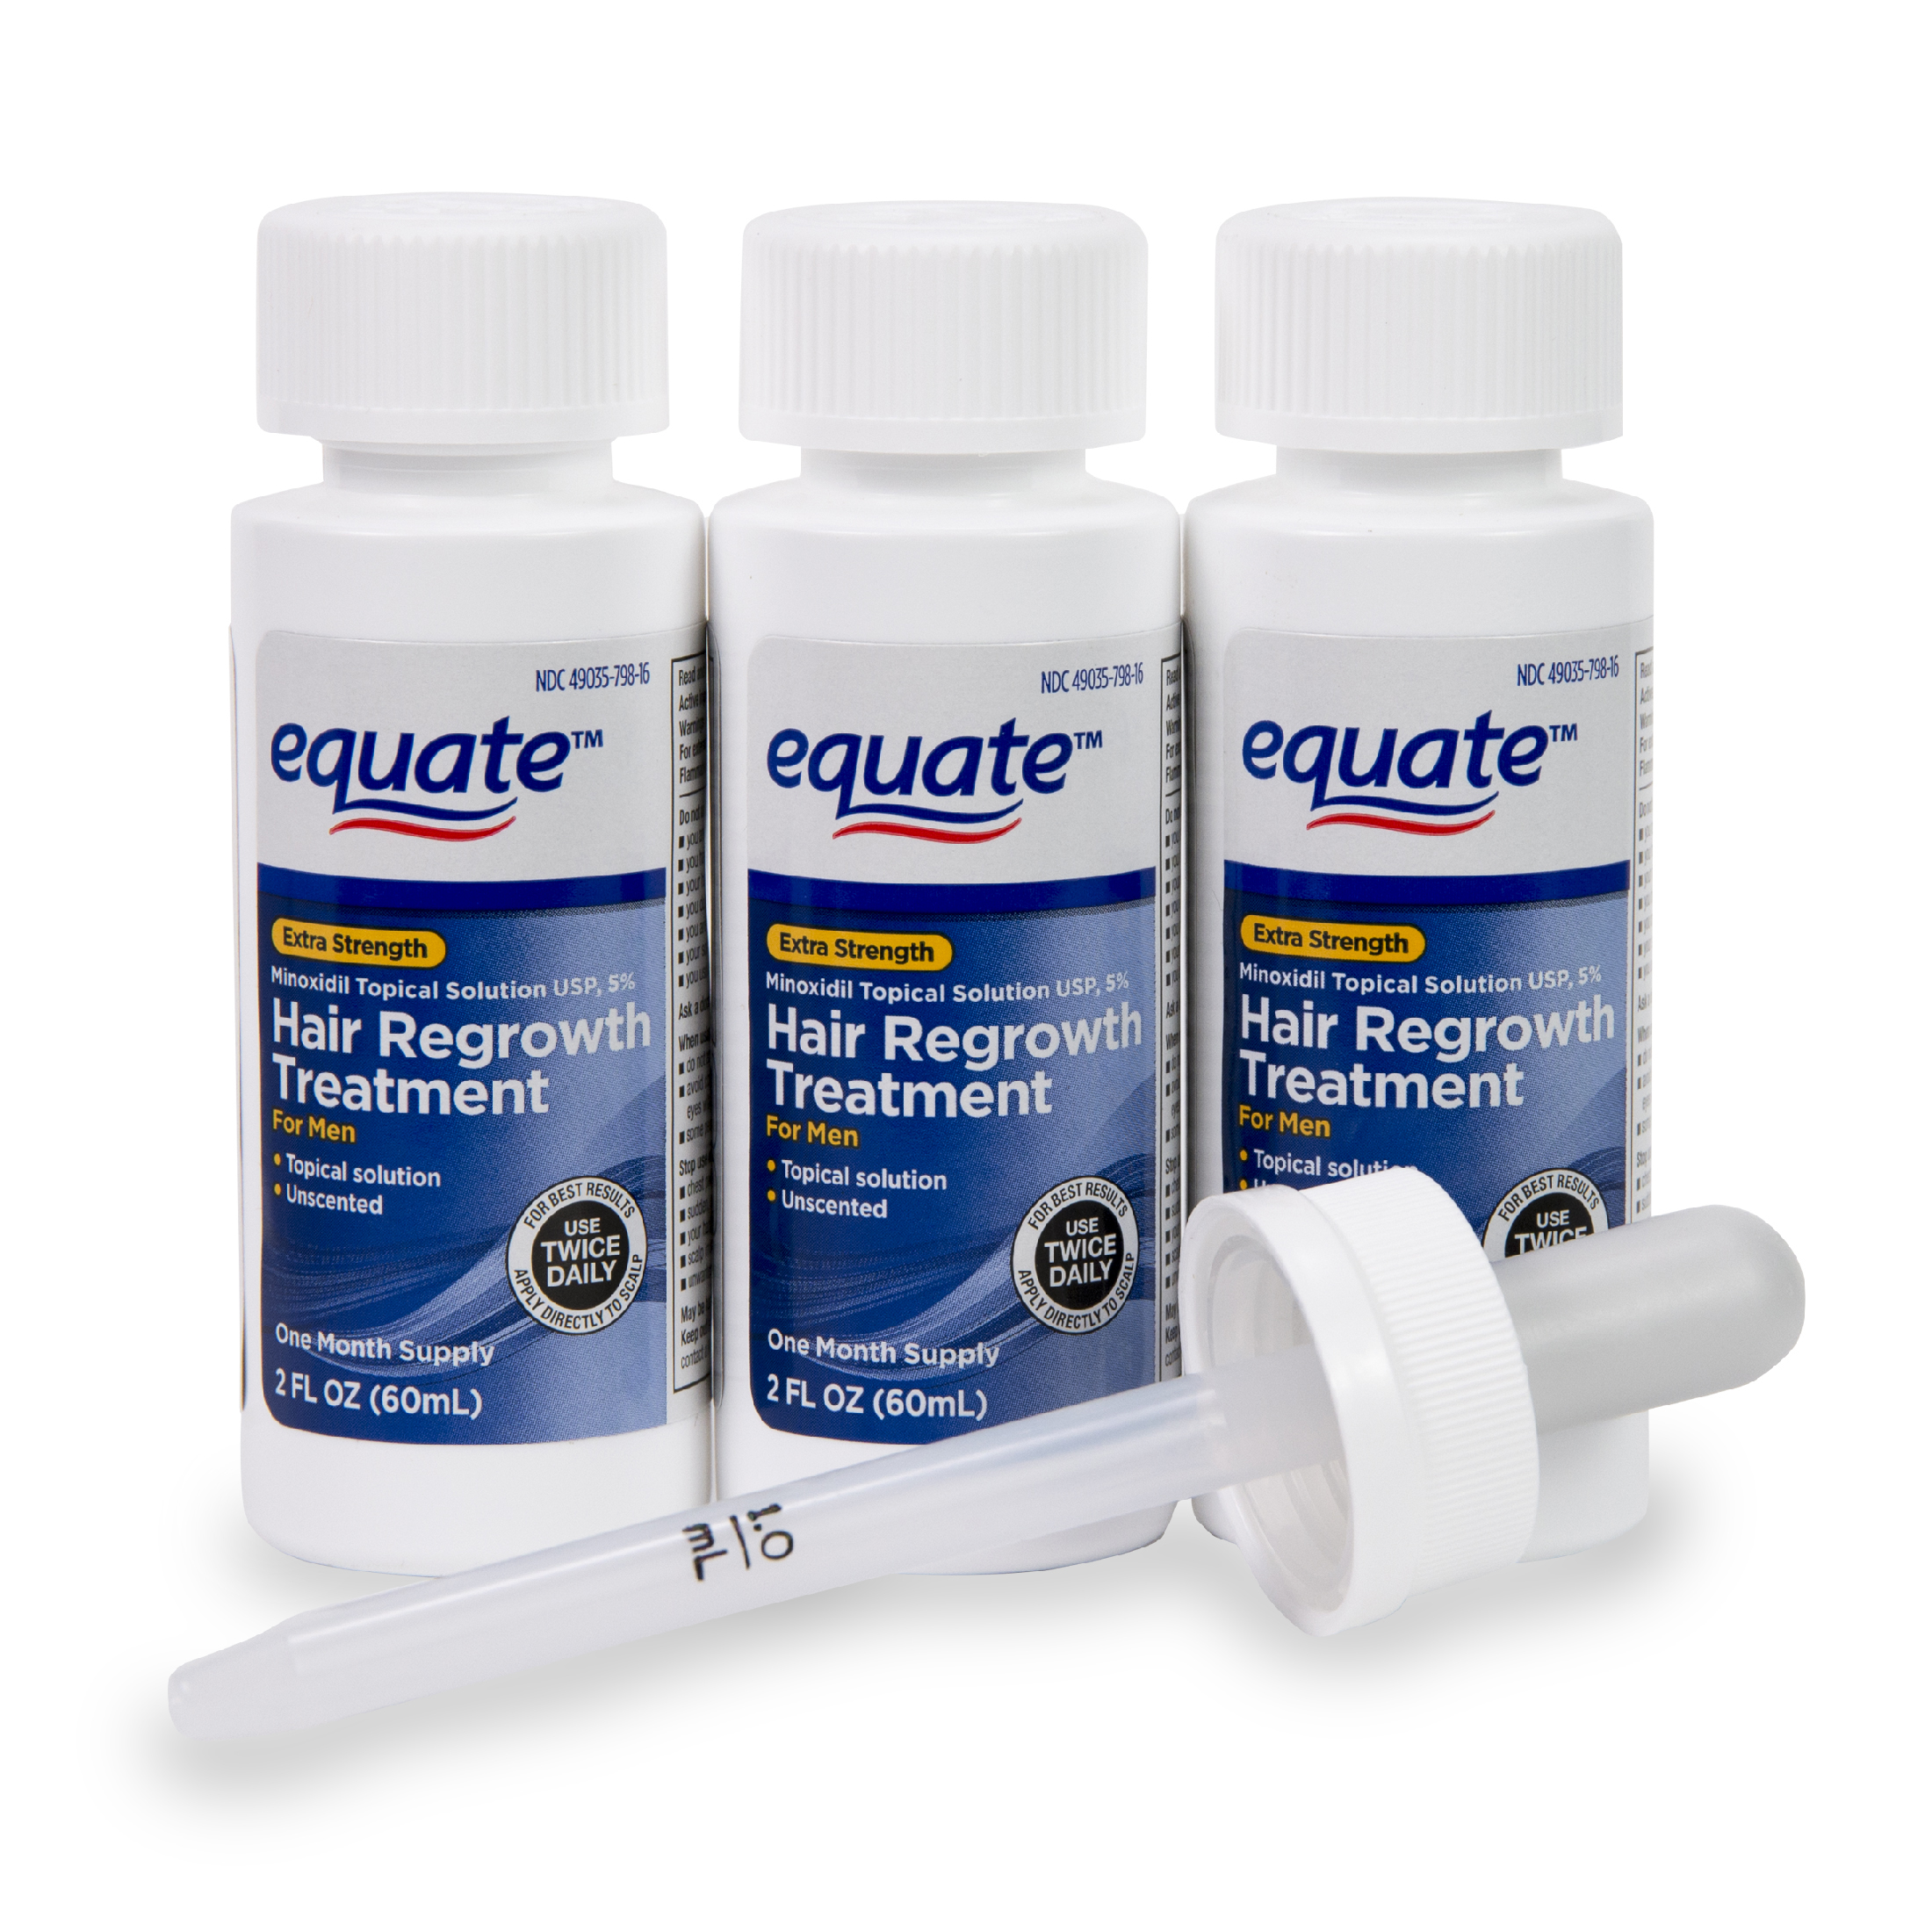 Equate Mens Minoxidil Hair Regrowth Treatment For Men 3 Month Beauty Barn Mom All Mane Shampo0 250 Ml Supply